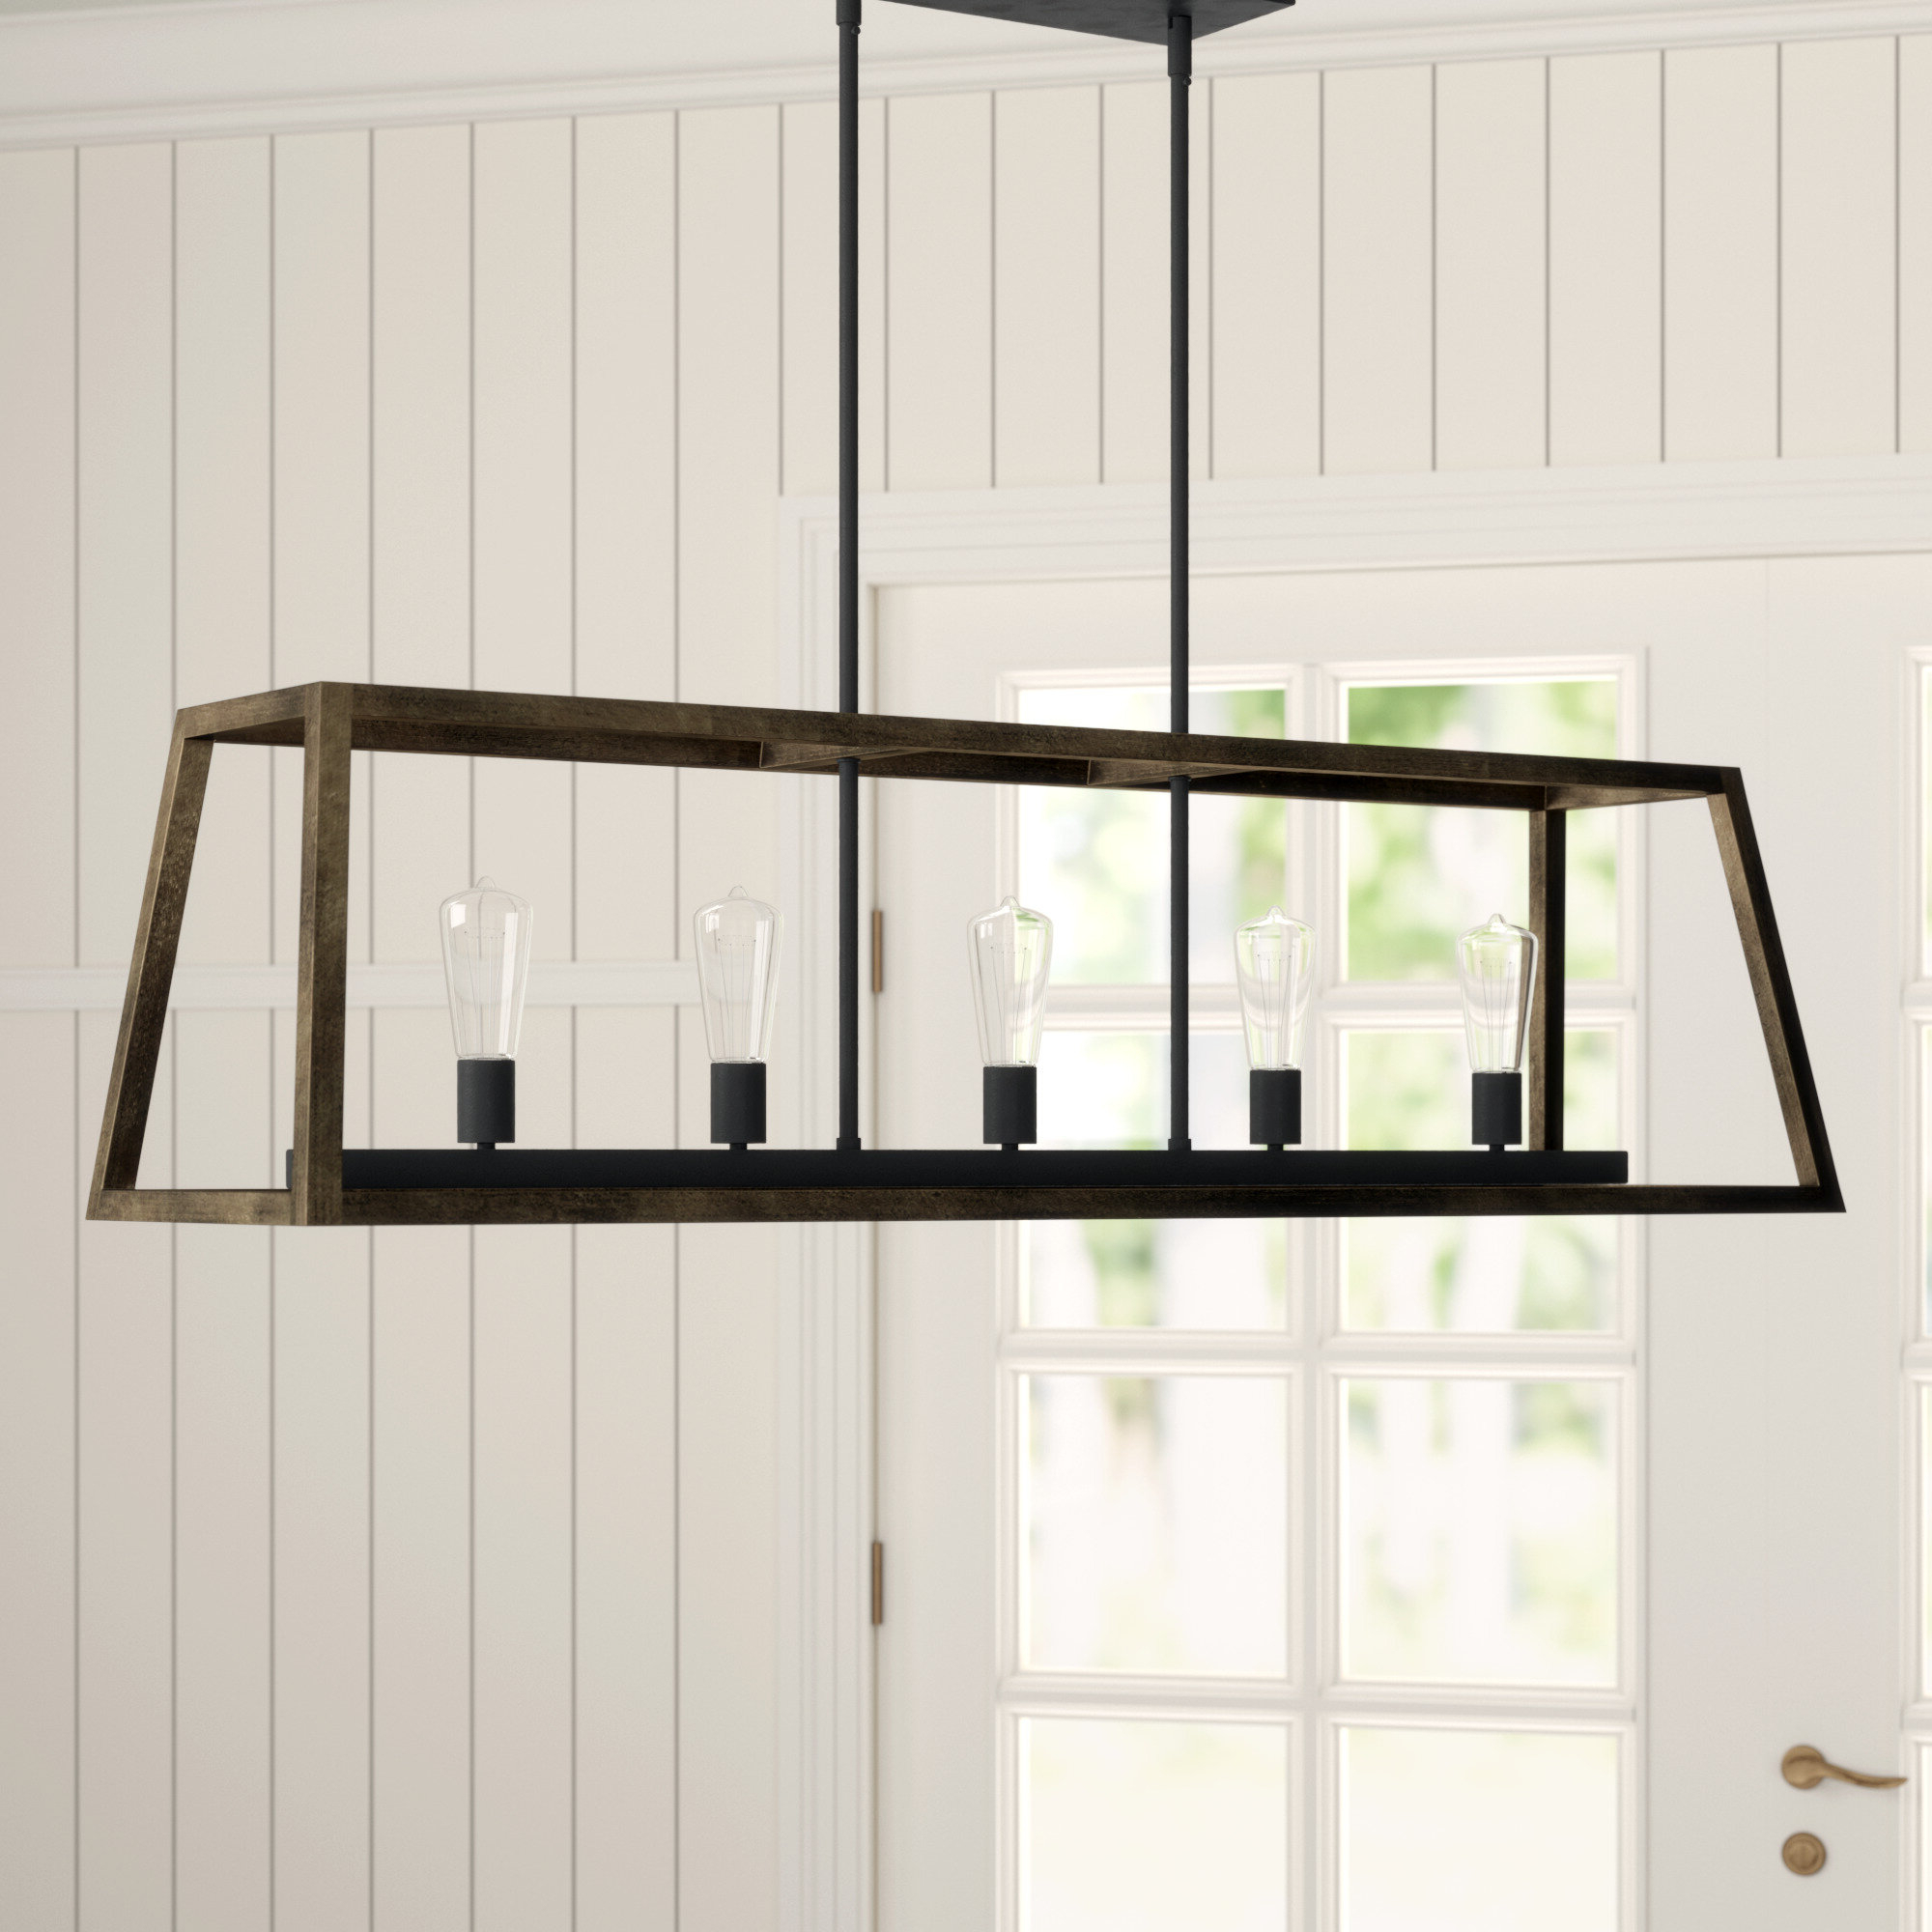 Bouvet 5-Light Kitchen Island Linear Pendants in Widely used Natarsha 5-Light Kitchen Island Linear Pendant